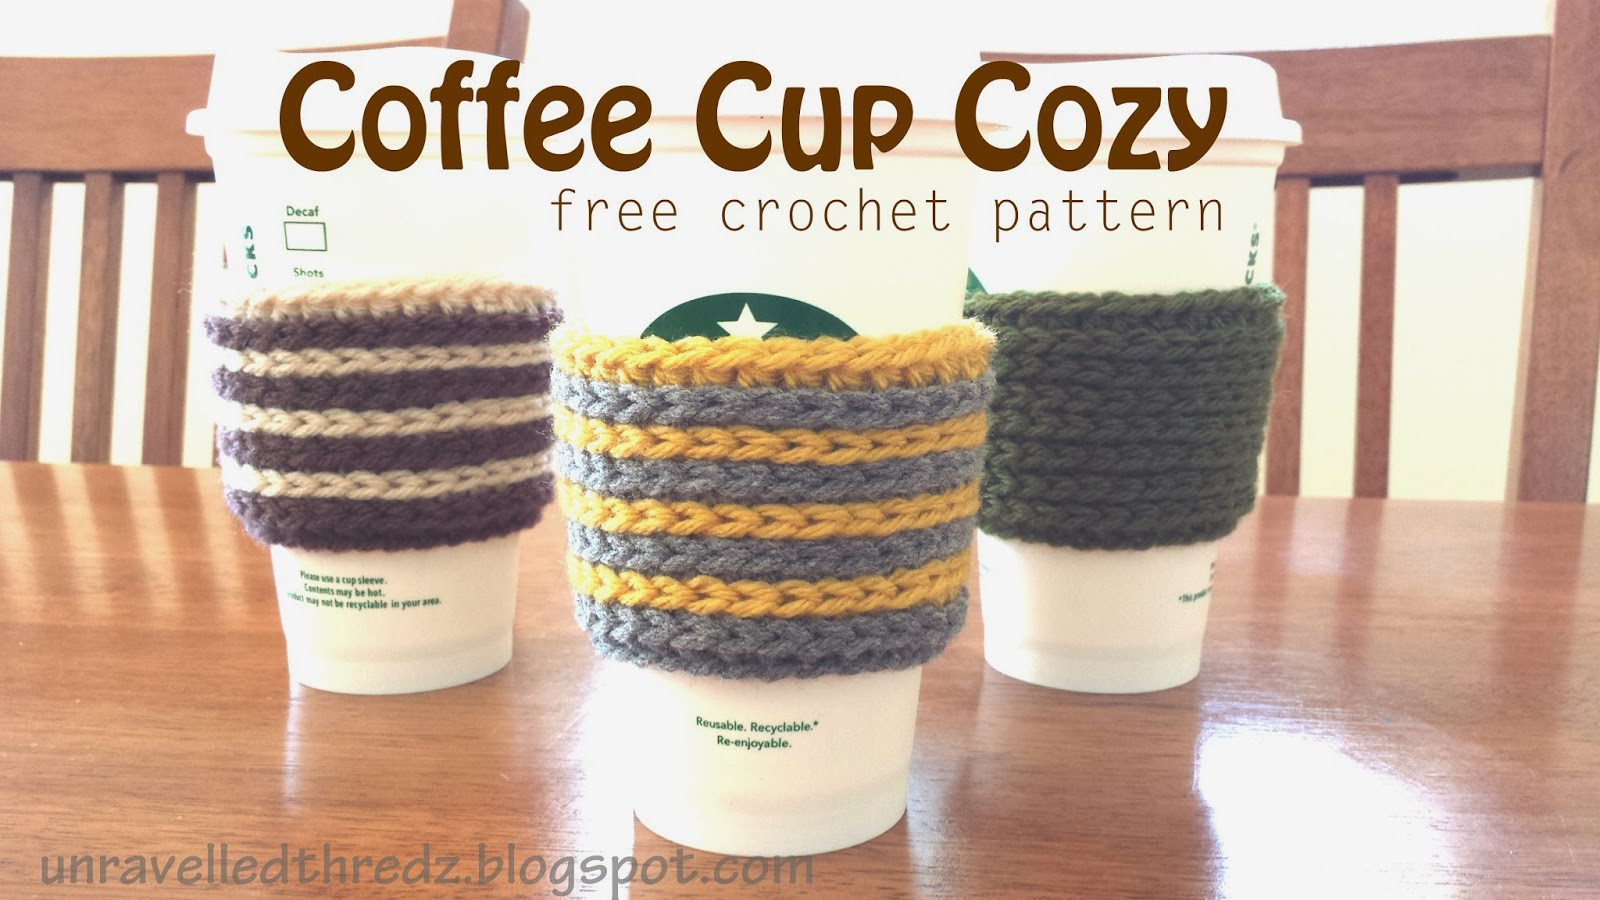 Crochet Coffee Cup Cozy Inspirational Crochet Class Beginning Crochet Sparkleez Crystles Of Crochet Coffee Cup Cozy Elegant Wooftastic Puppy Crochet Coffee Cozy